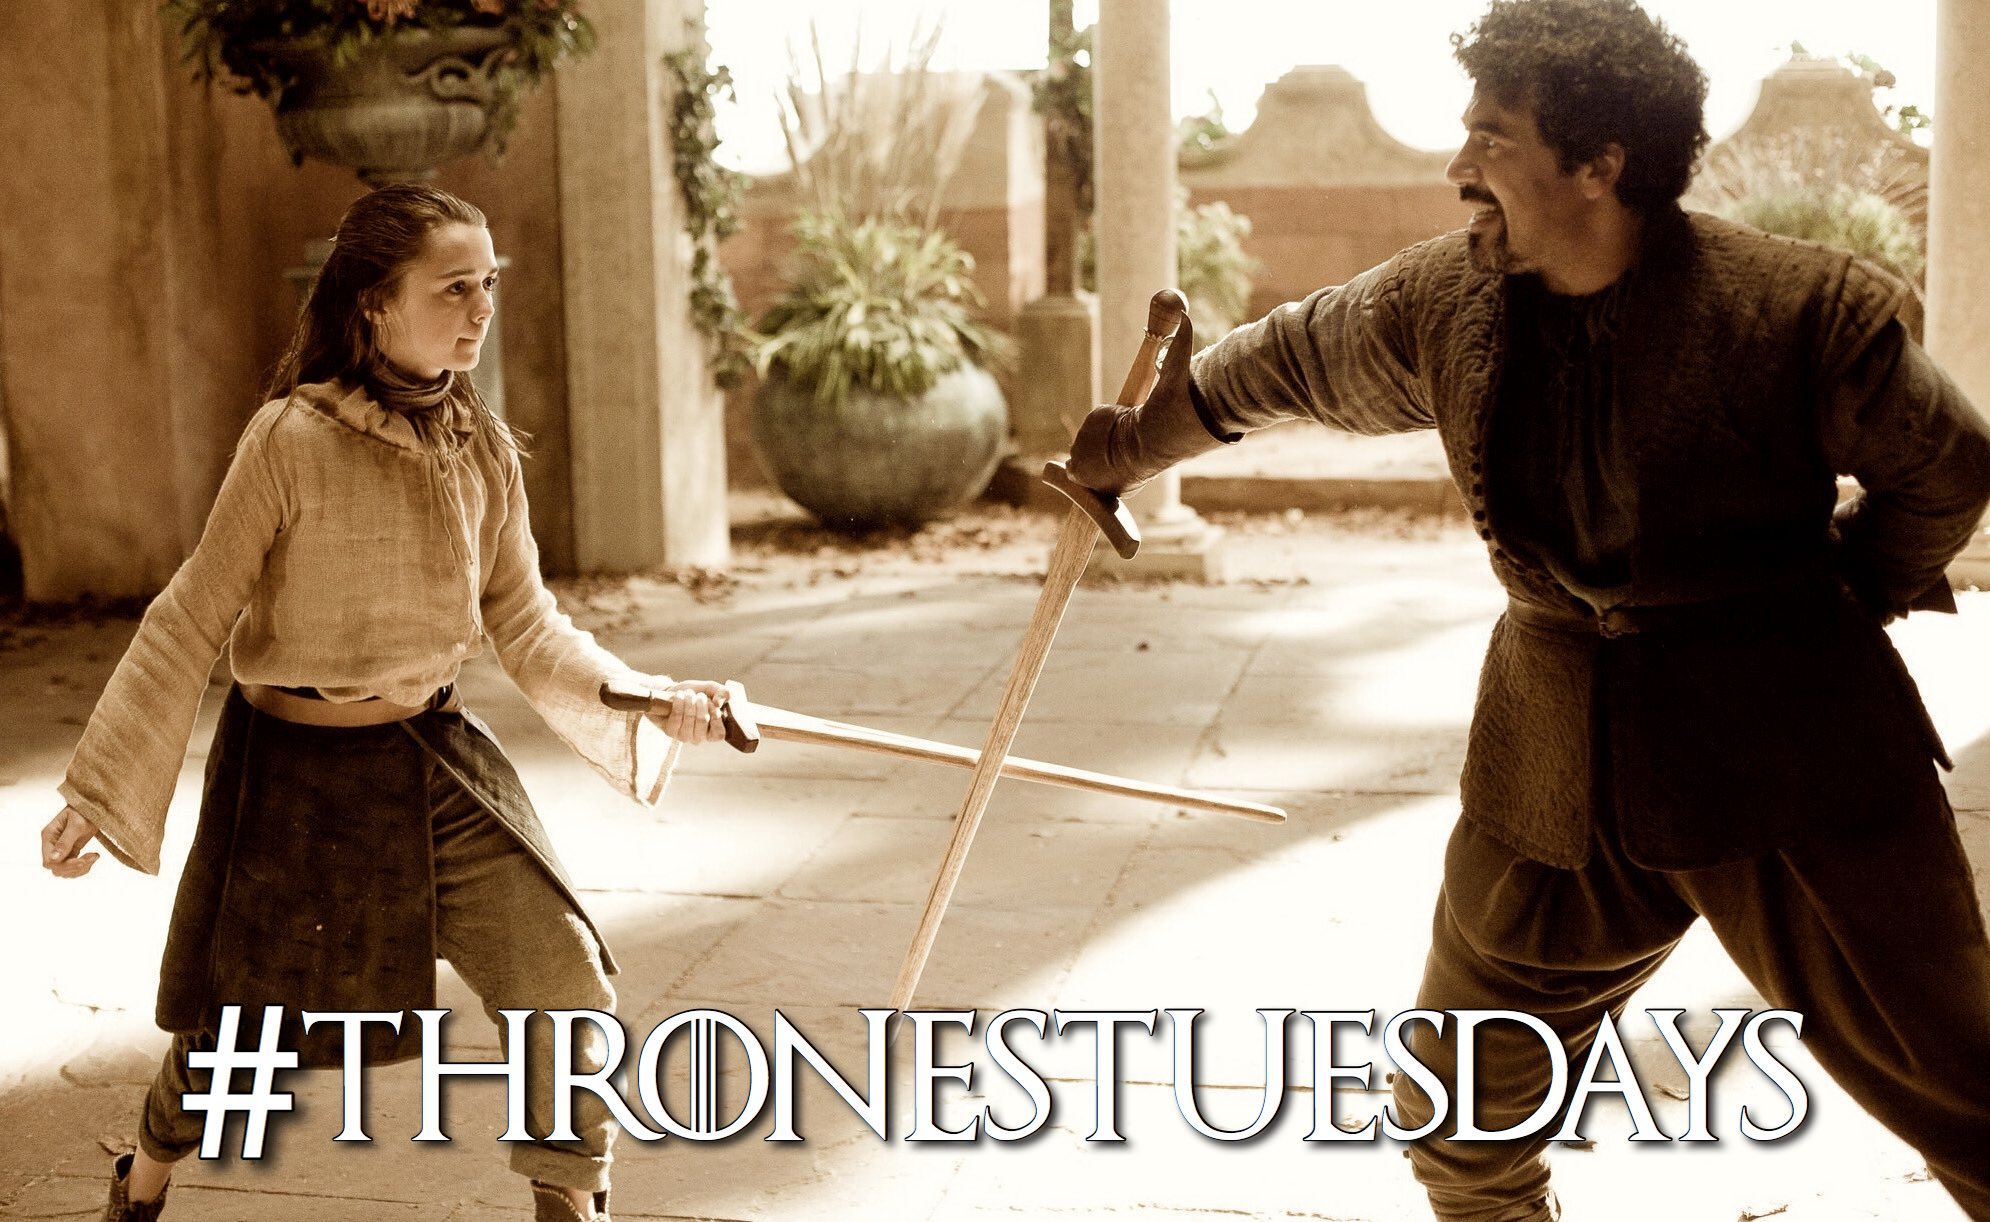 It's that time again. Grab some snacks and get comfortable. It's time for my #ThronesTuesday recap! https://t.co/y6xynIEjYF